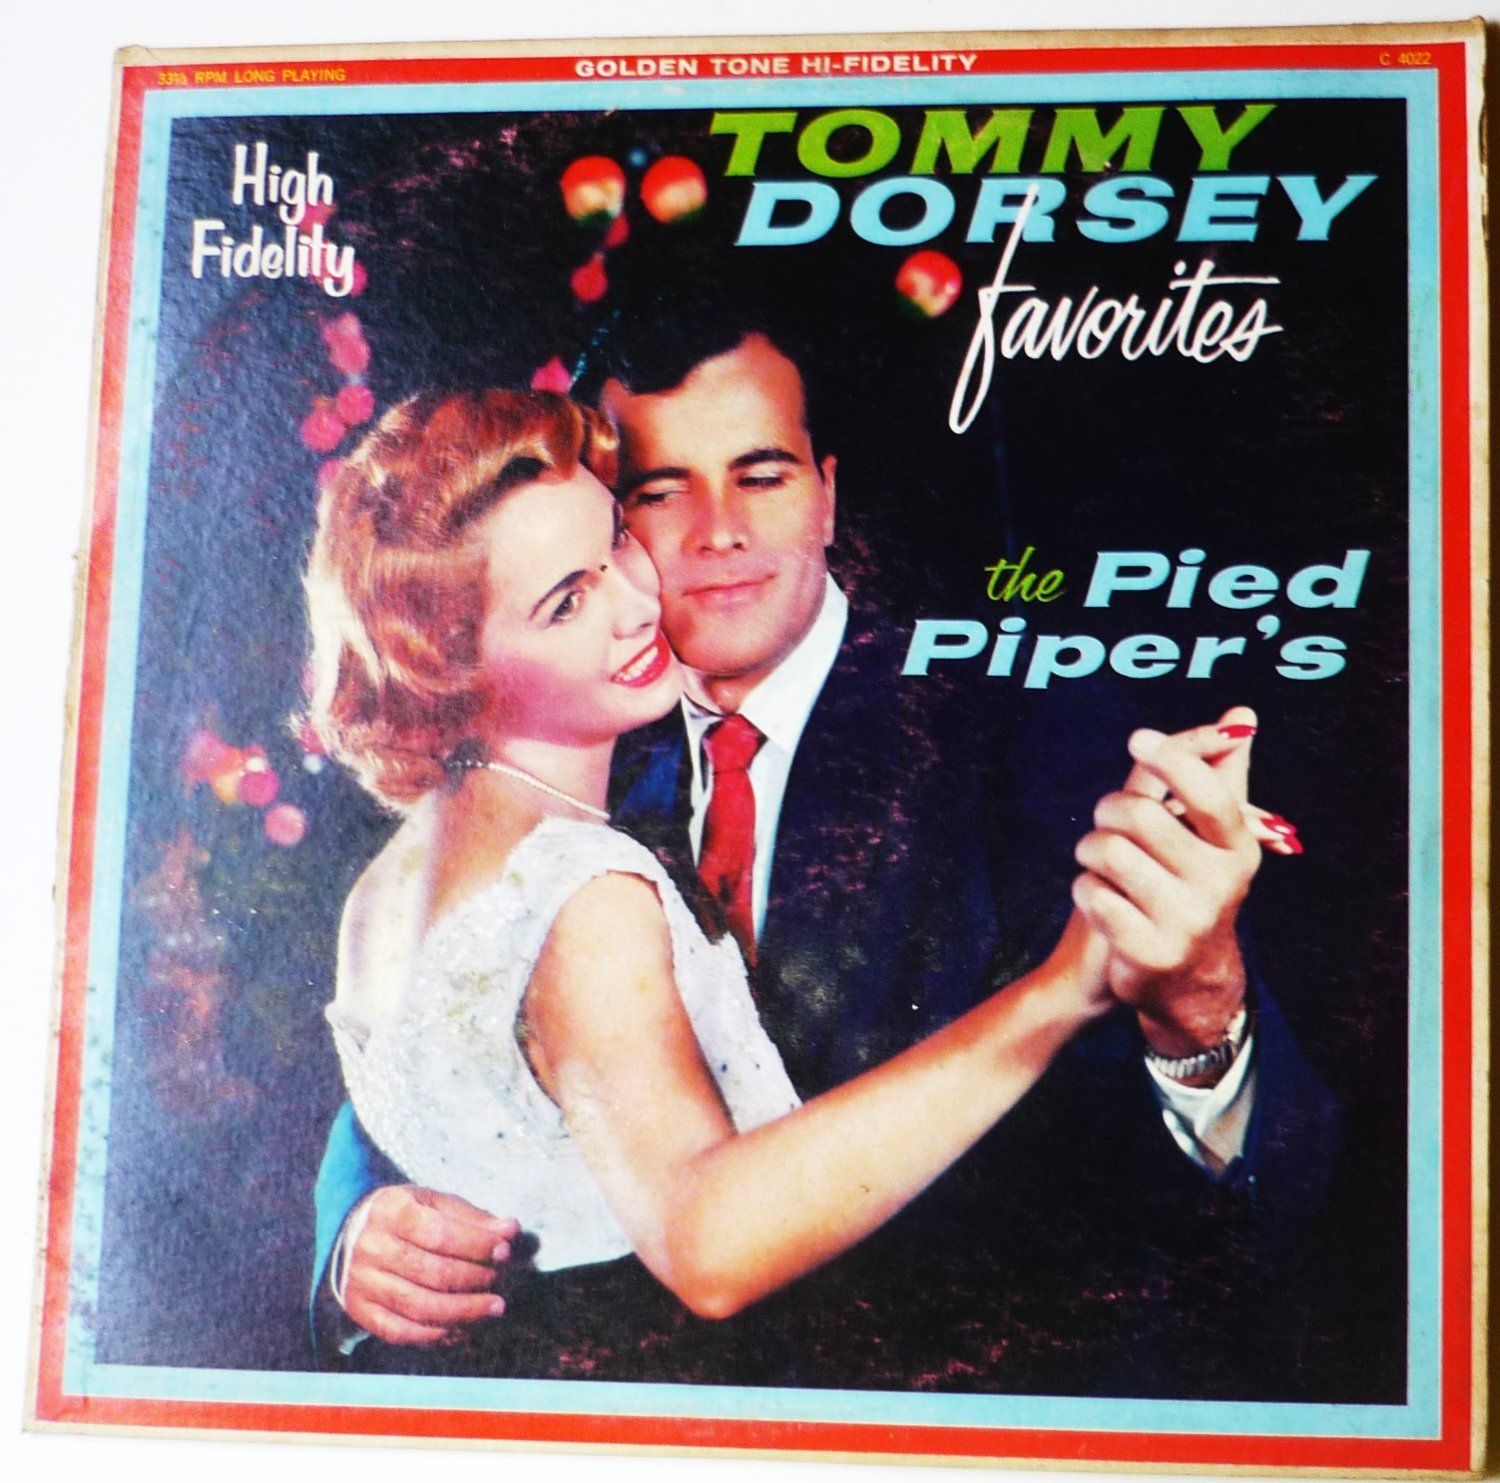 Tommy Dorsey Favorites lp by The Pied Pipers